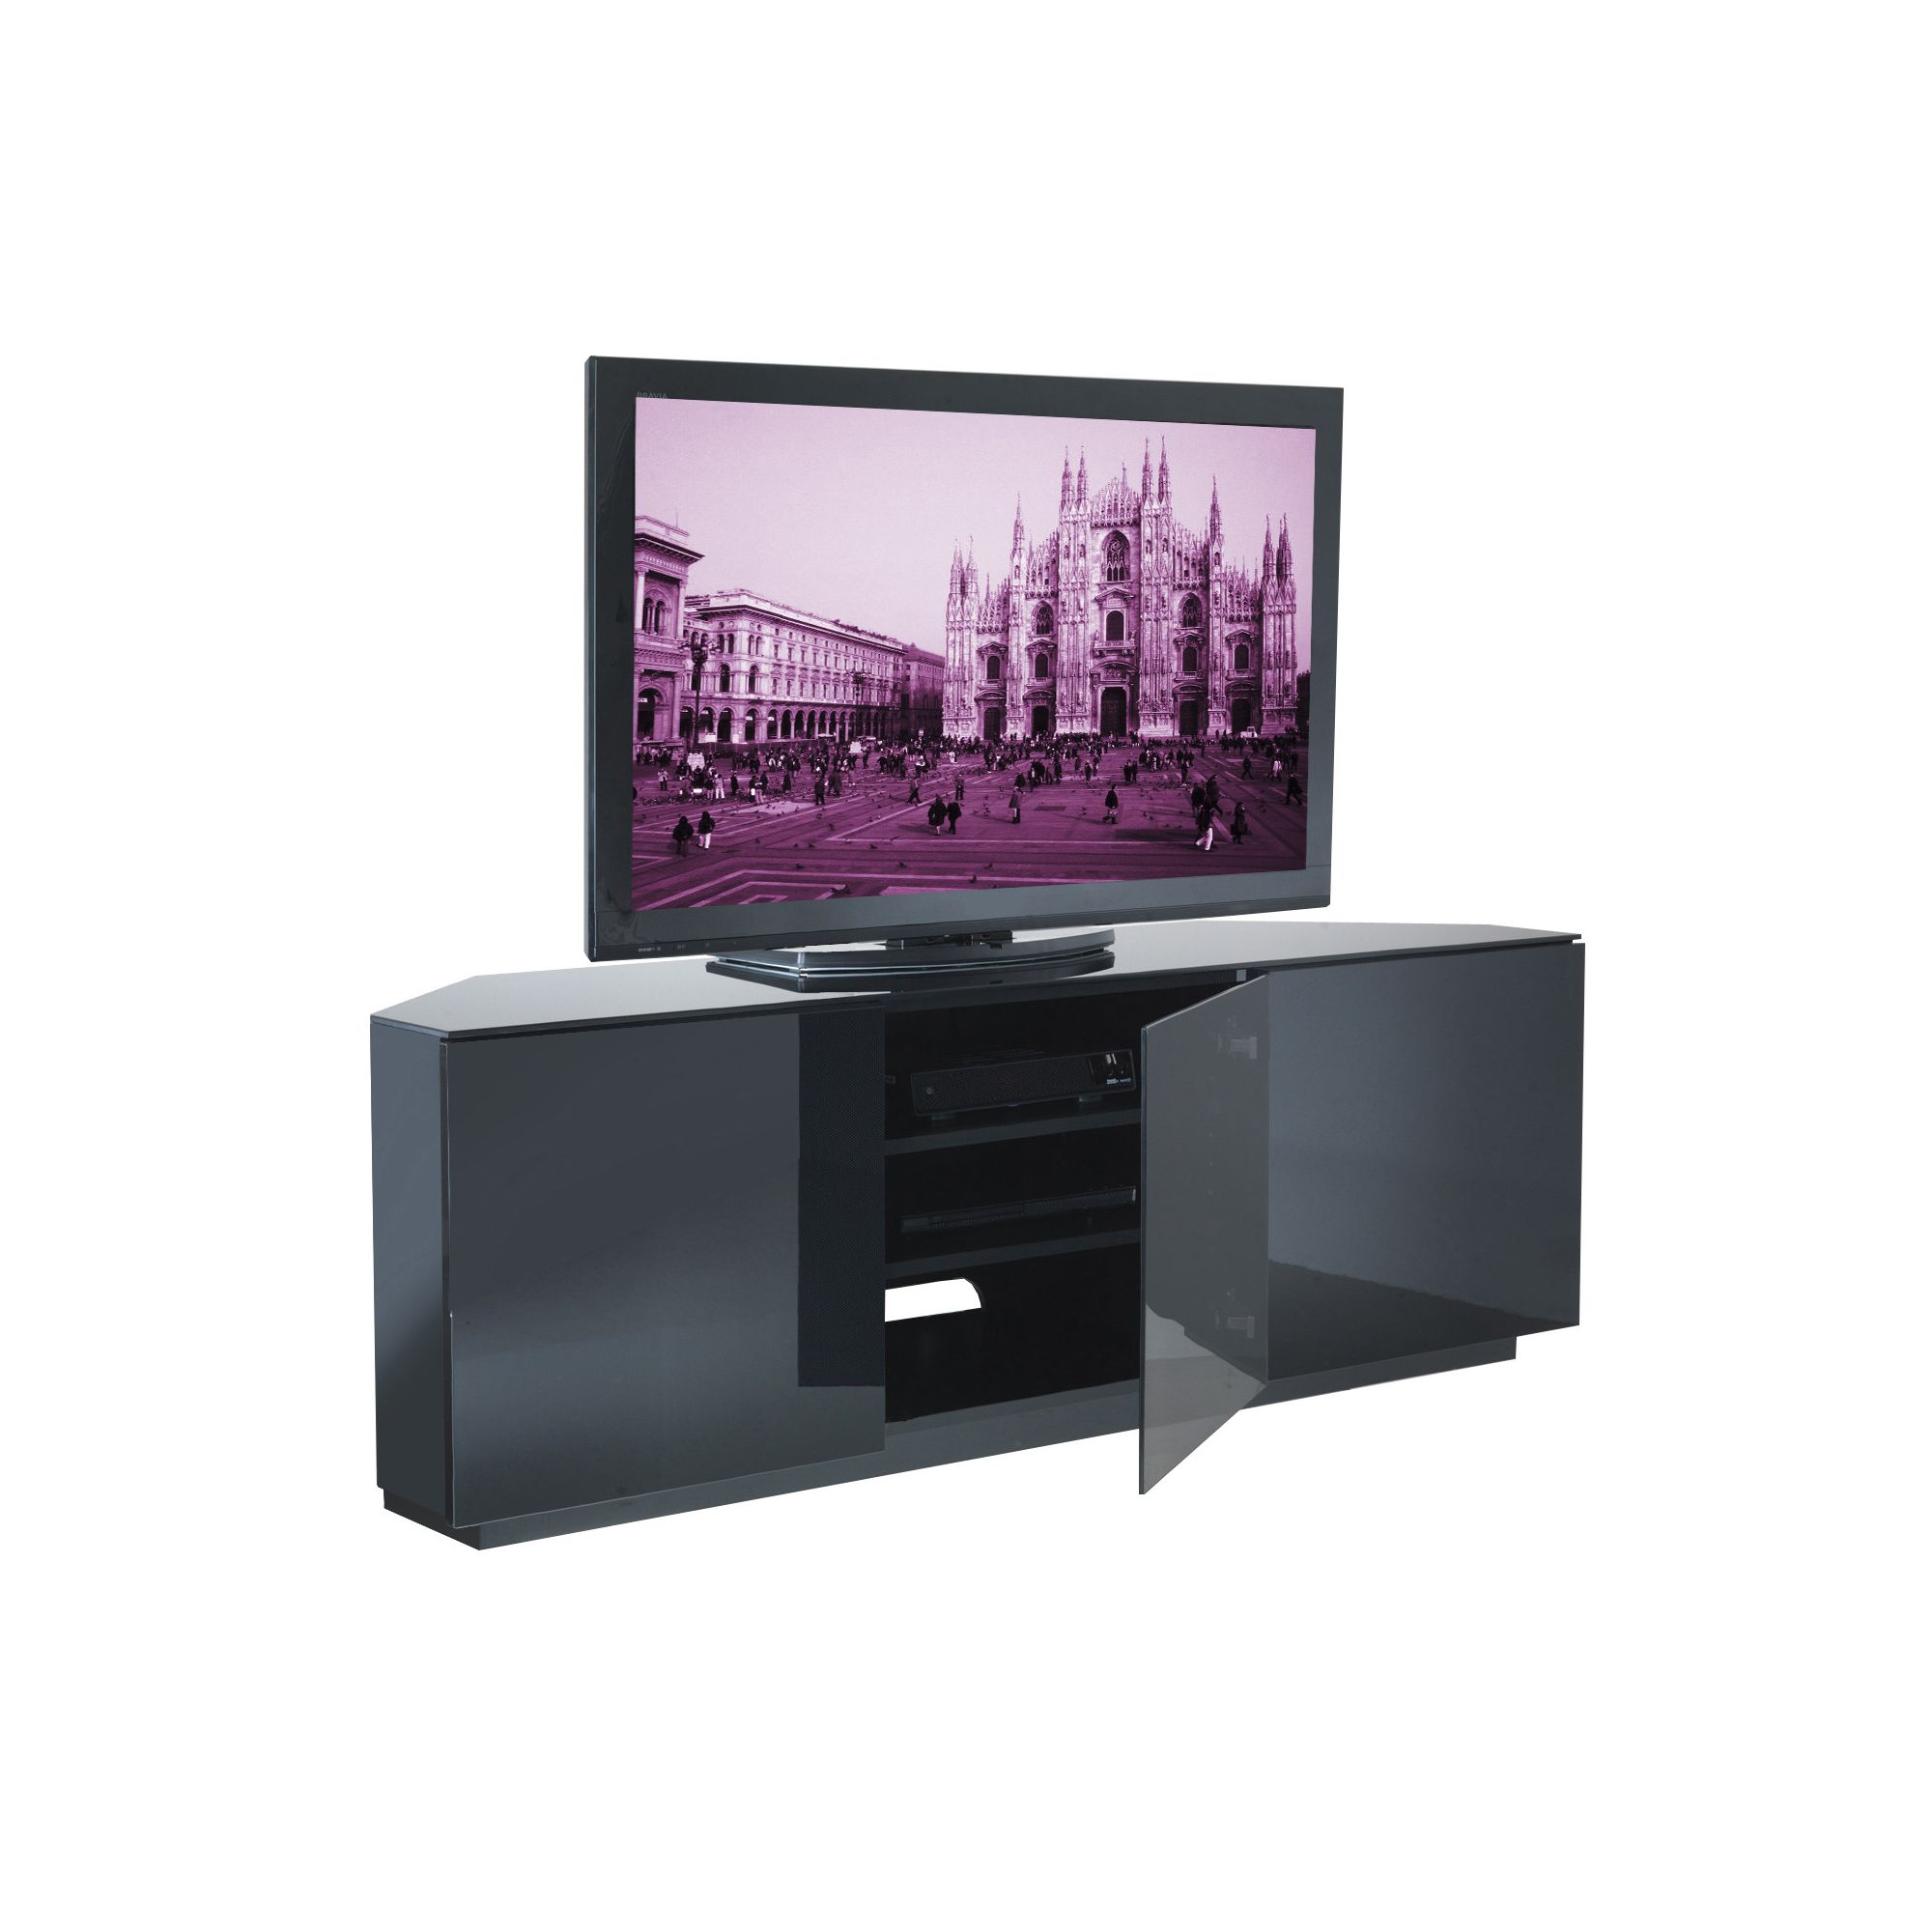 UK-CF City Scape Milan 60'' TV Stand - Black at Tesco Direct